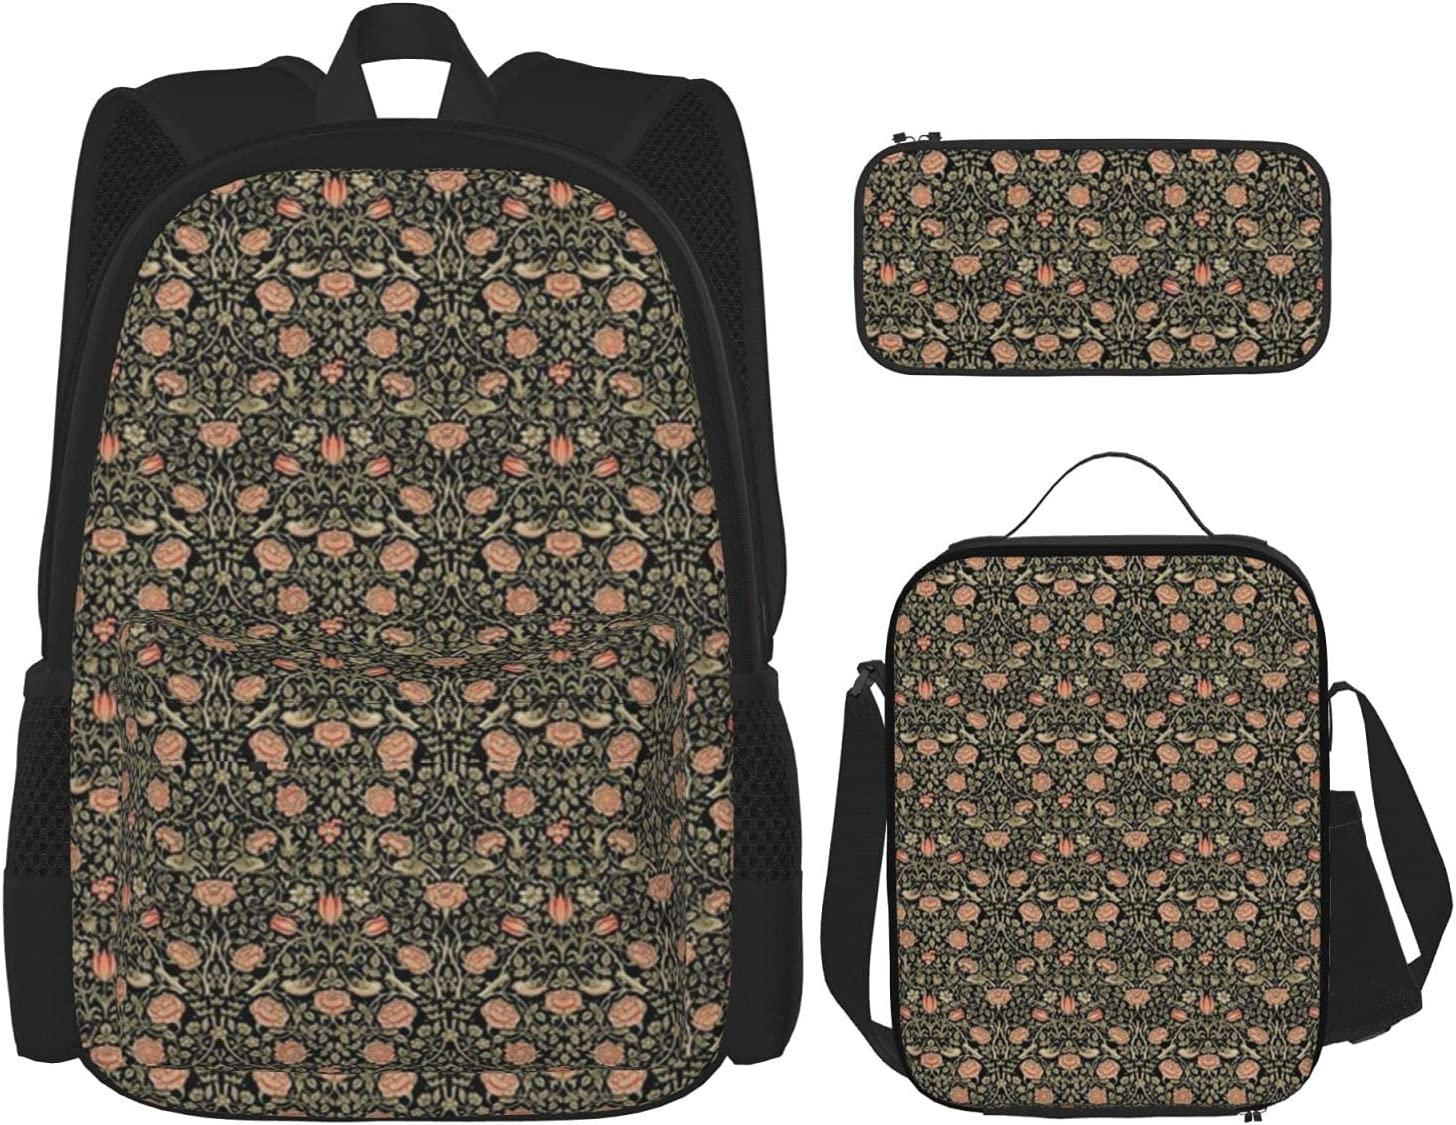 Backpack Sale Bags Tiny Tudor Roses Black quality assurance Pencil Bag C with Lunch